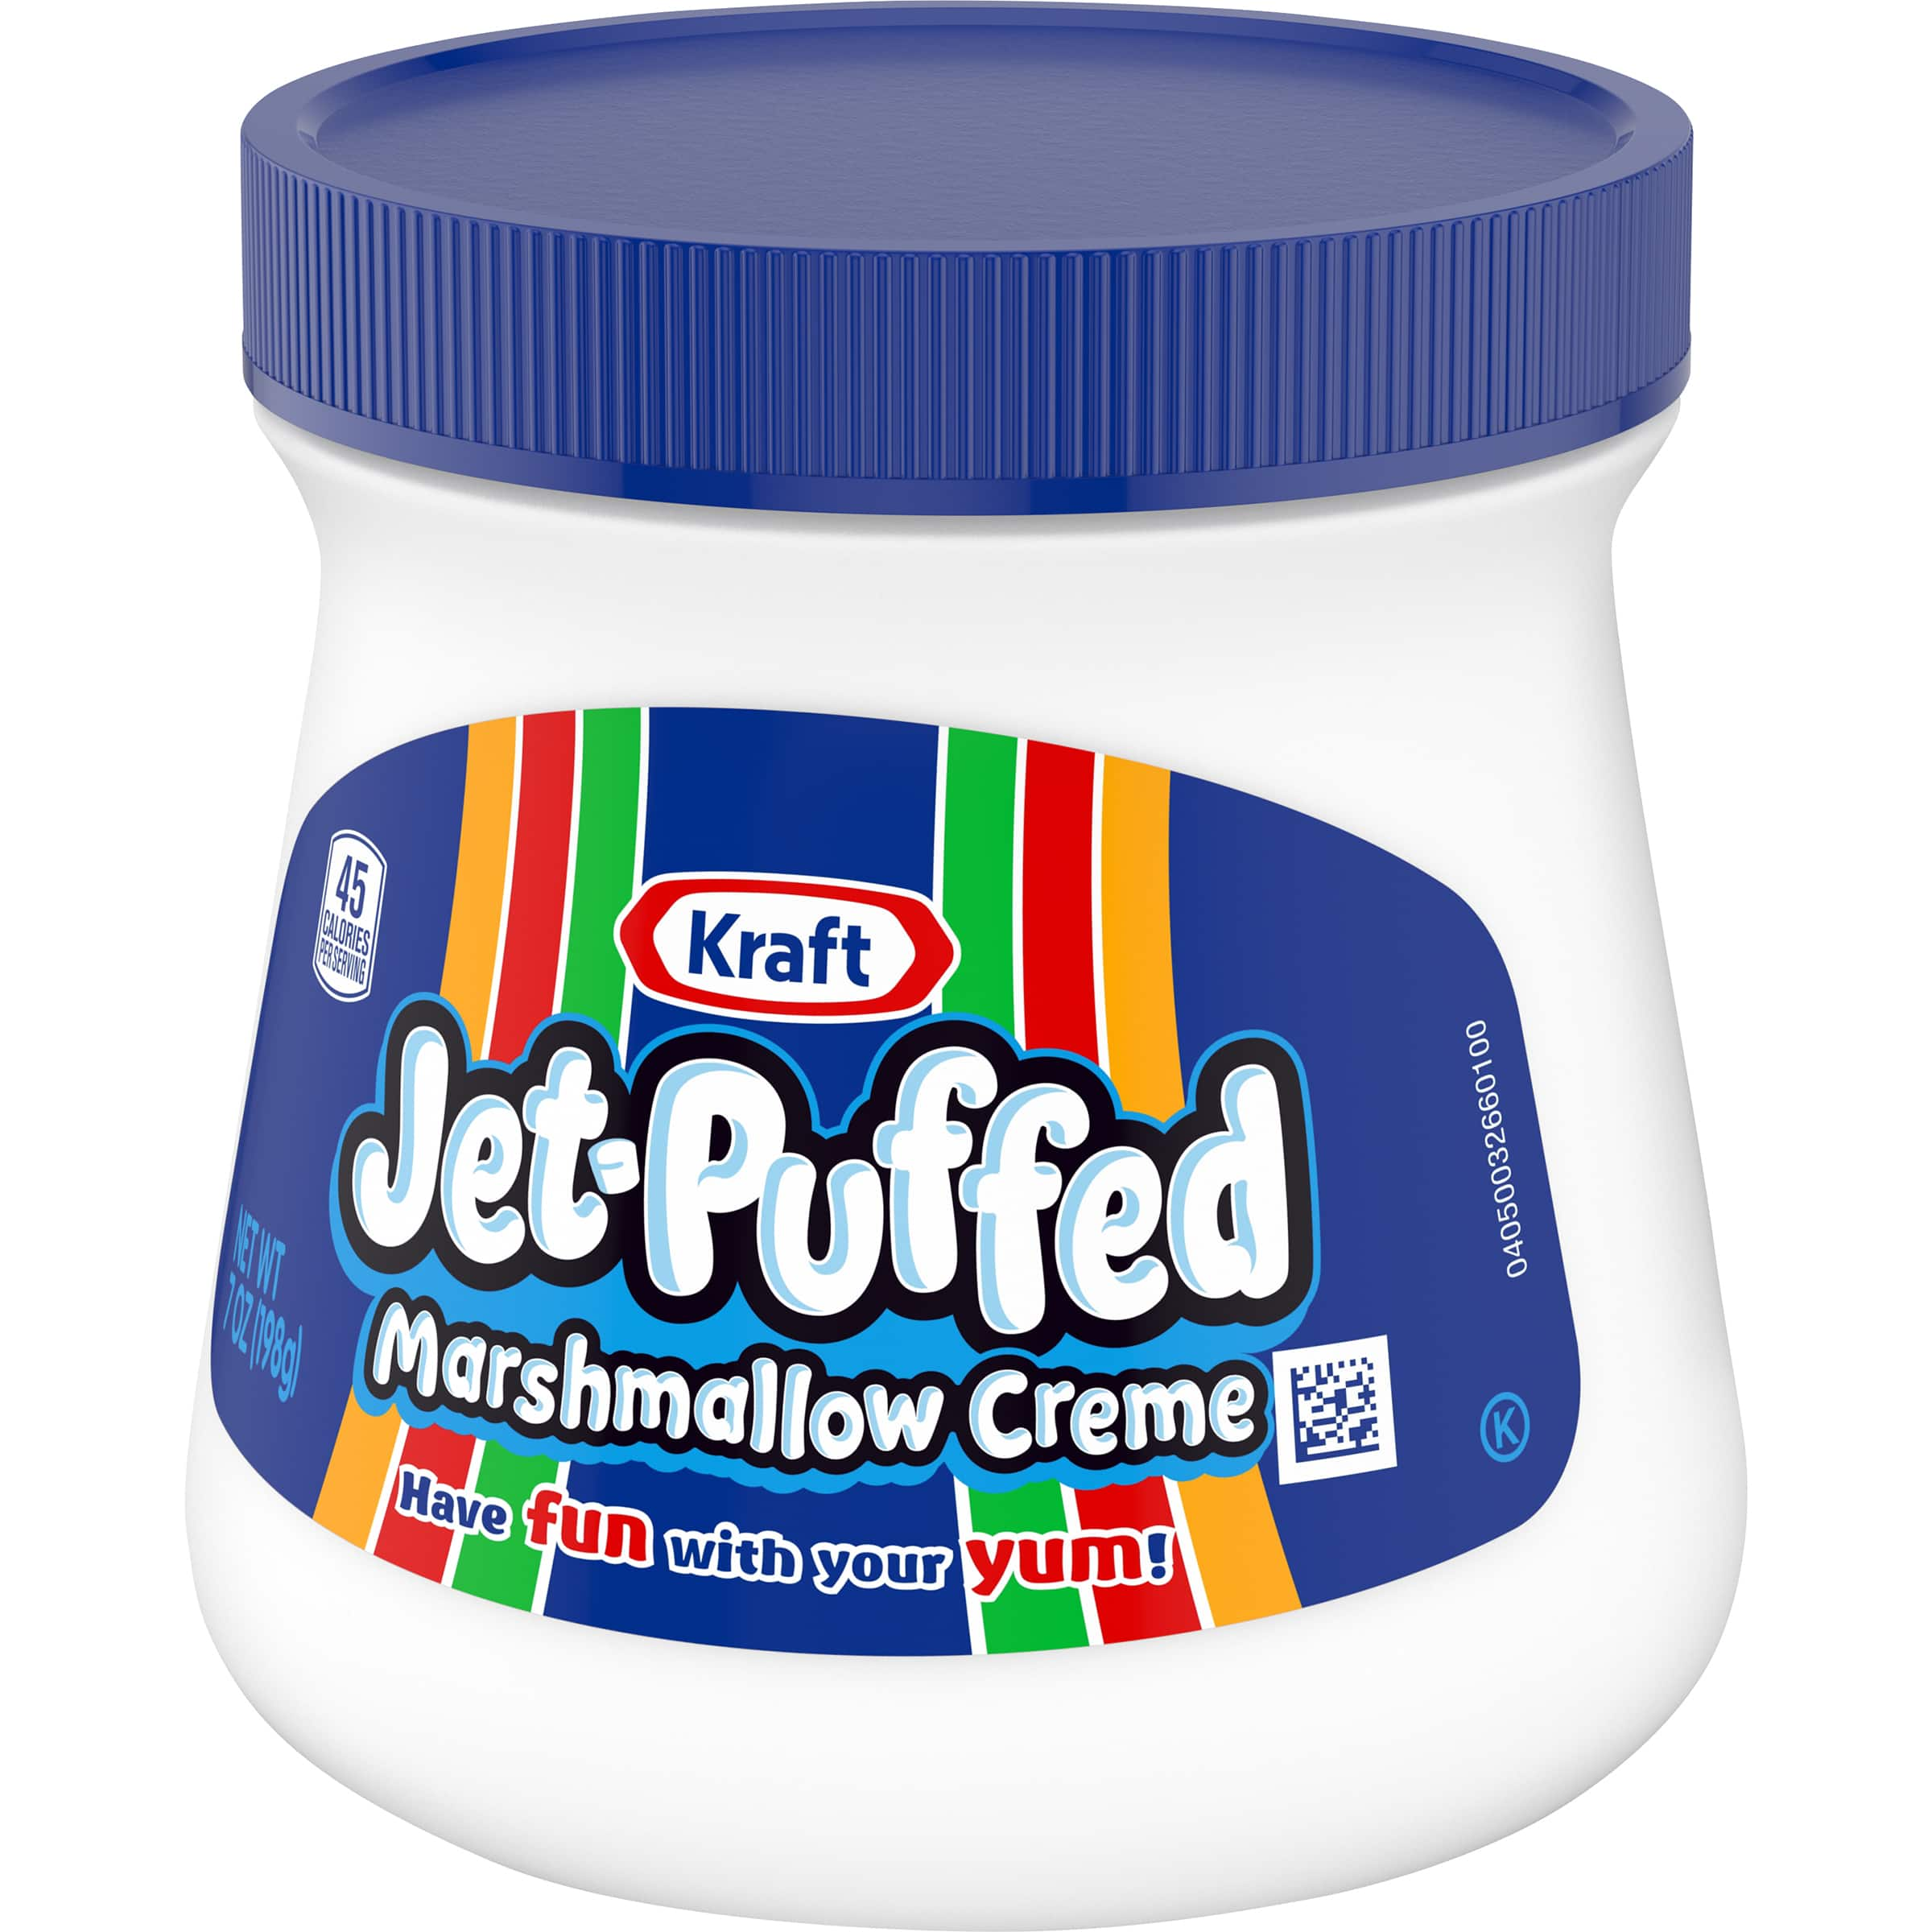 Jet-Puffed Marshmallow Creme Spread $1.28 w/ 5% S&S and Free Shipping